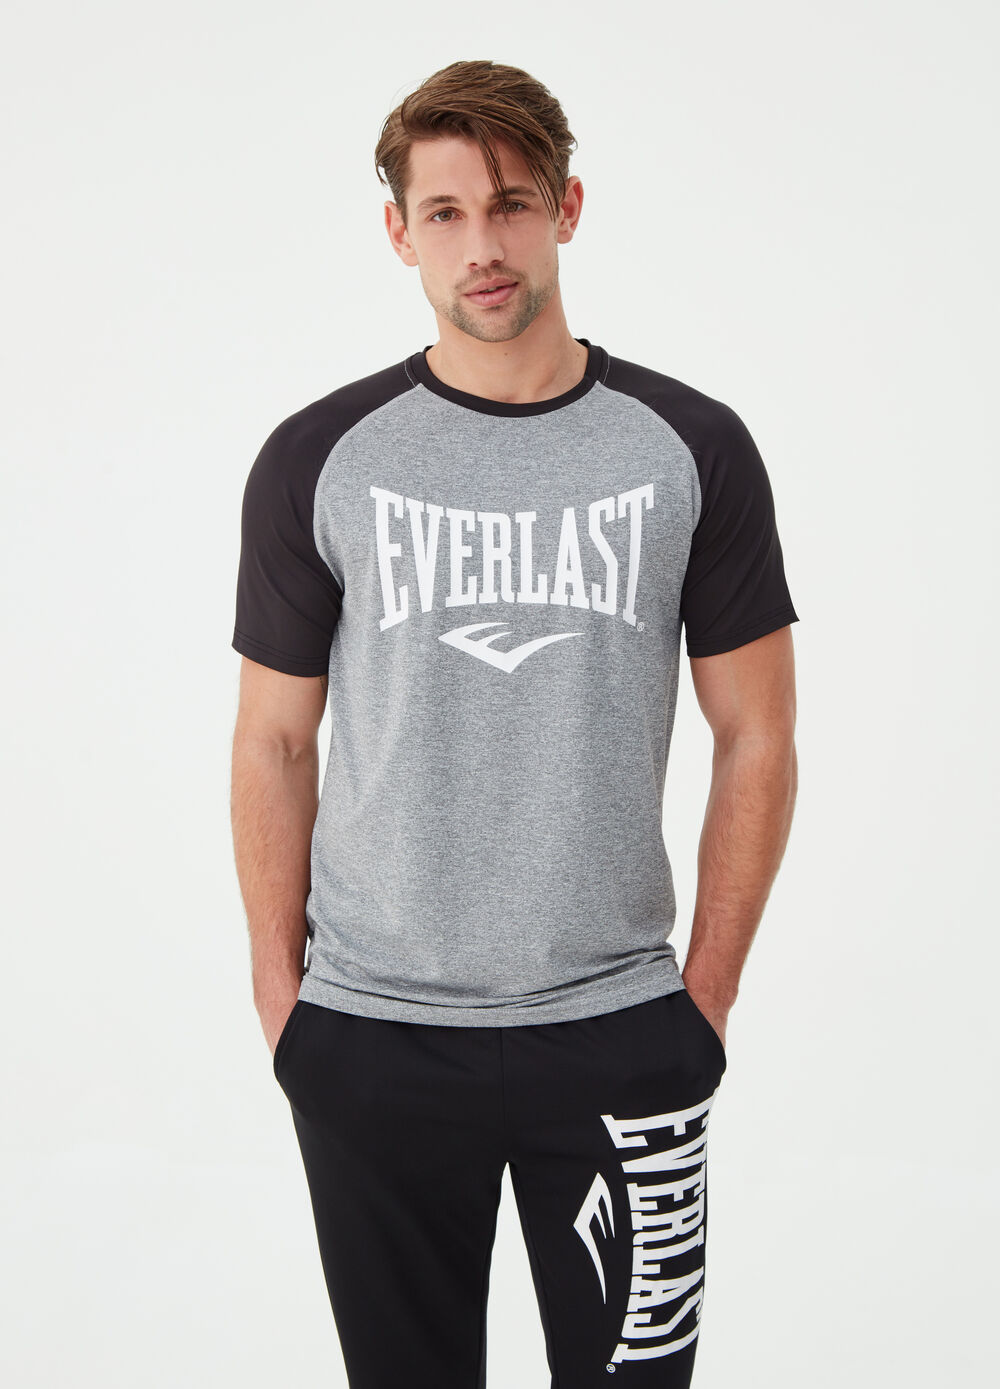 Everlast stretch T-shirt with contrasting sleeves